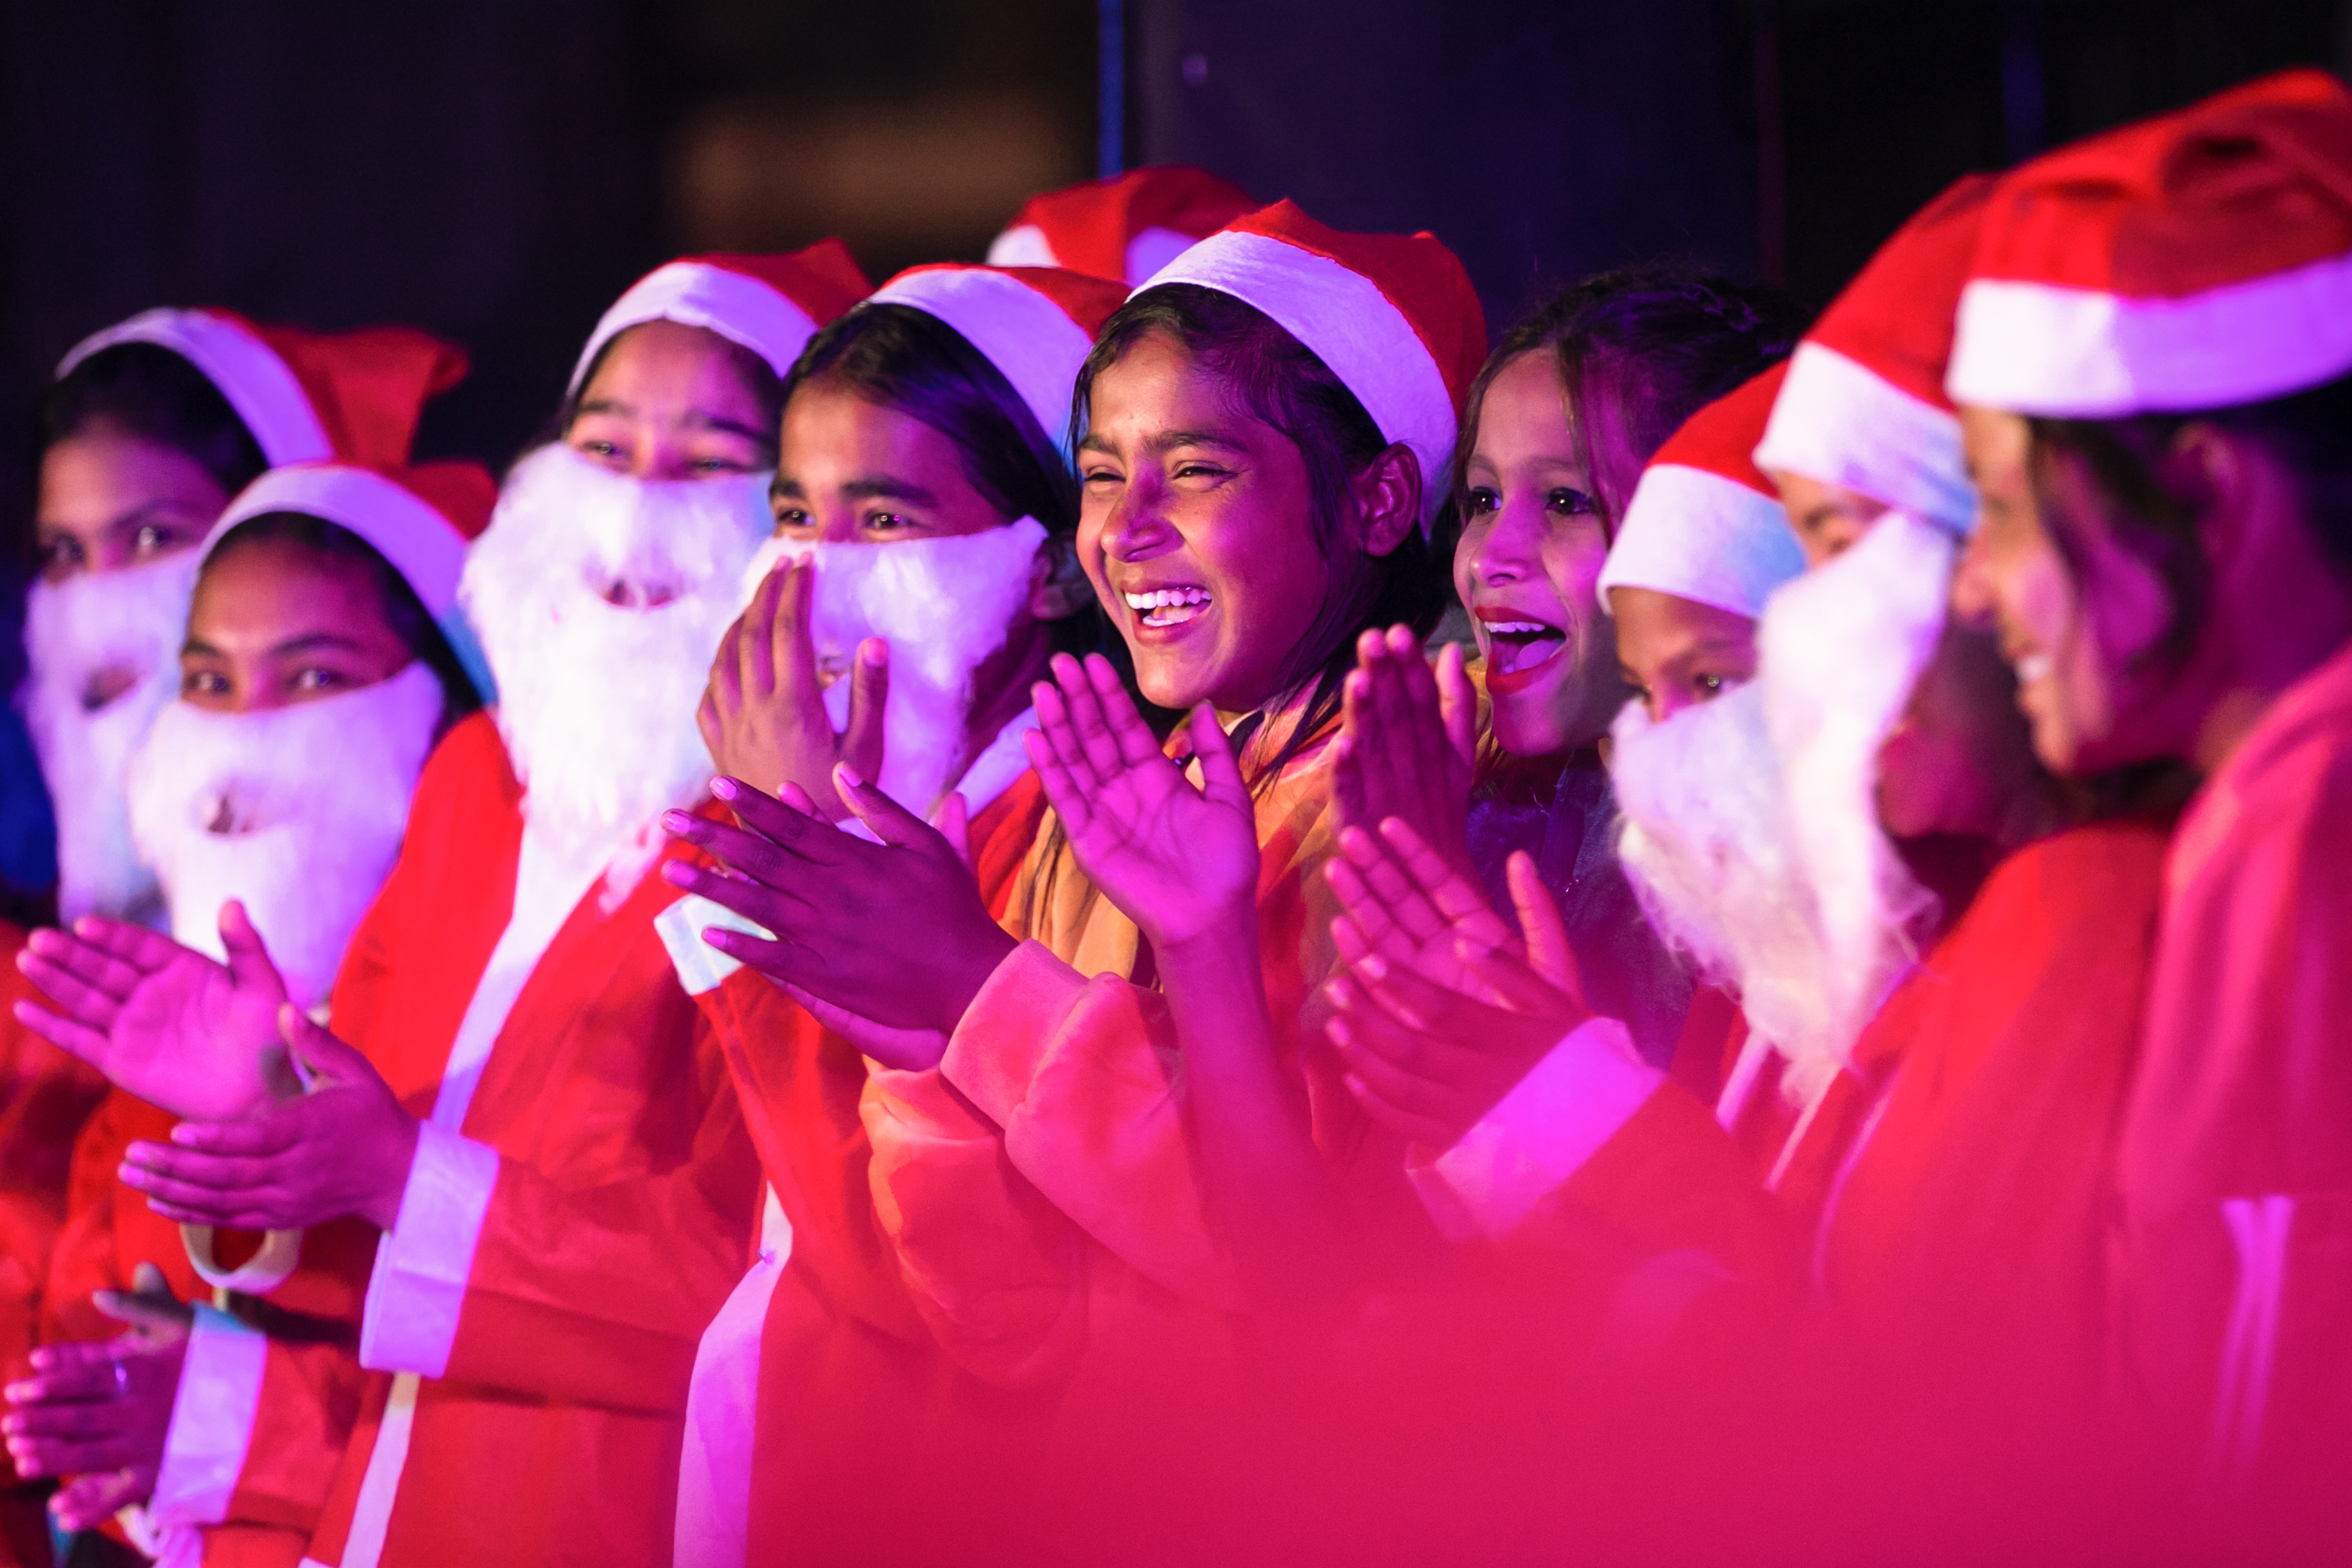 KATHMANDU, NEPAL - 2020/12/24: Nepalese boys and girls dressed as Santa Claus takes part in the Christmas carols as they celebrate Christmas eve at HCM Church. Christmas Eve is the evening or entire day before Christmas Day, the festival commemorating the birth of Jesus Christ. Christmas Day is observed around the world. (Photo by Prabin Ranabhat/SOPA Images/LightRocket via Getty Images)